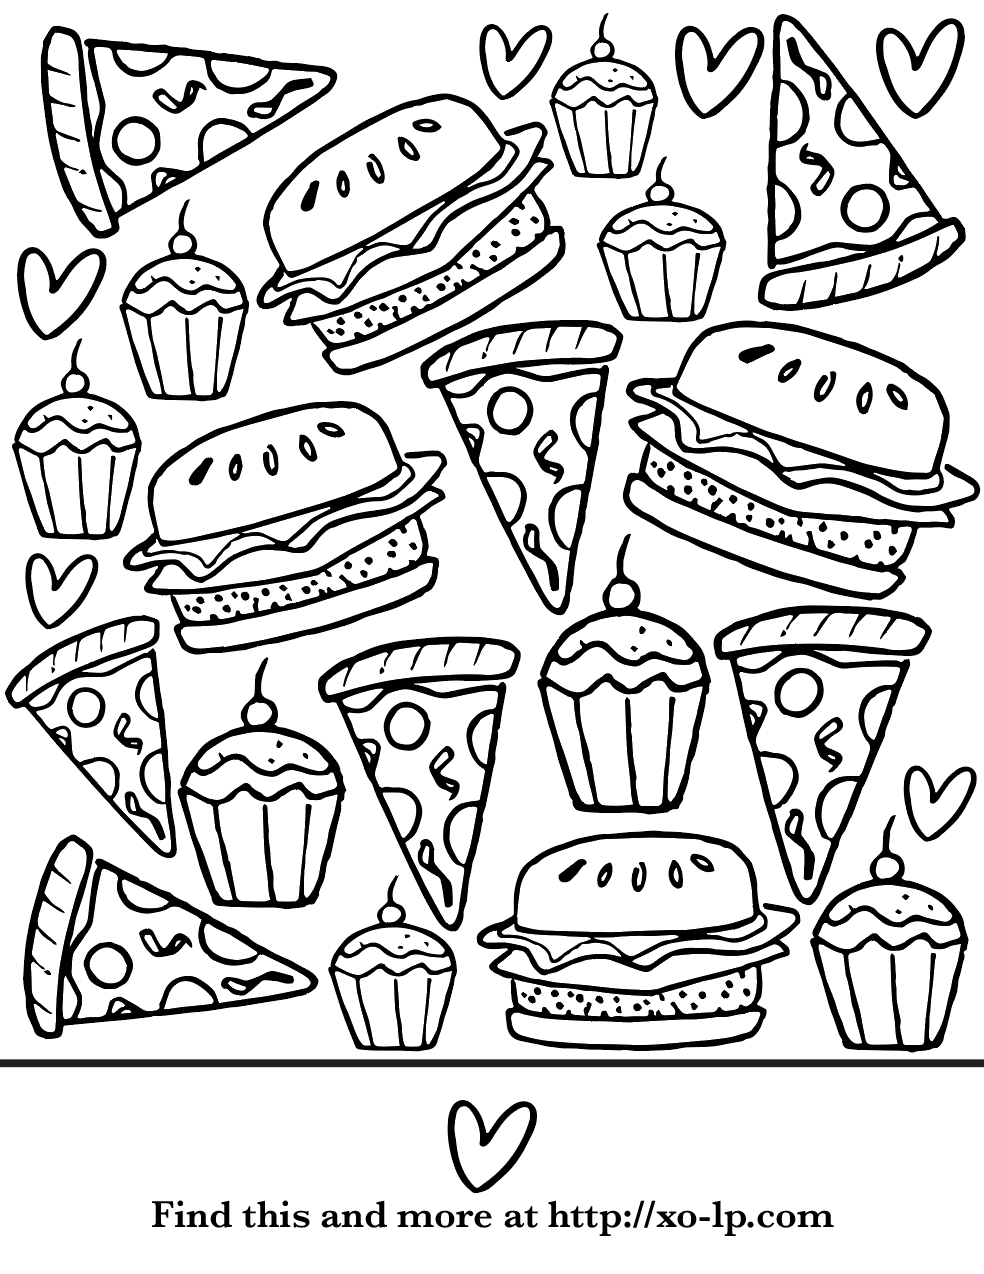 Junk Food Coloring Page Food Coloring Pages Summer Coloring Pages Cute Coloring Pages [ 1274 x 984 Pixel ]